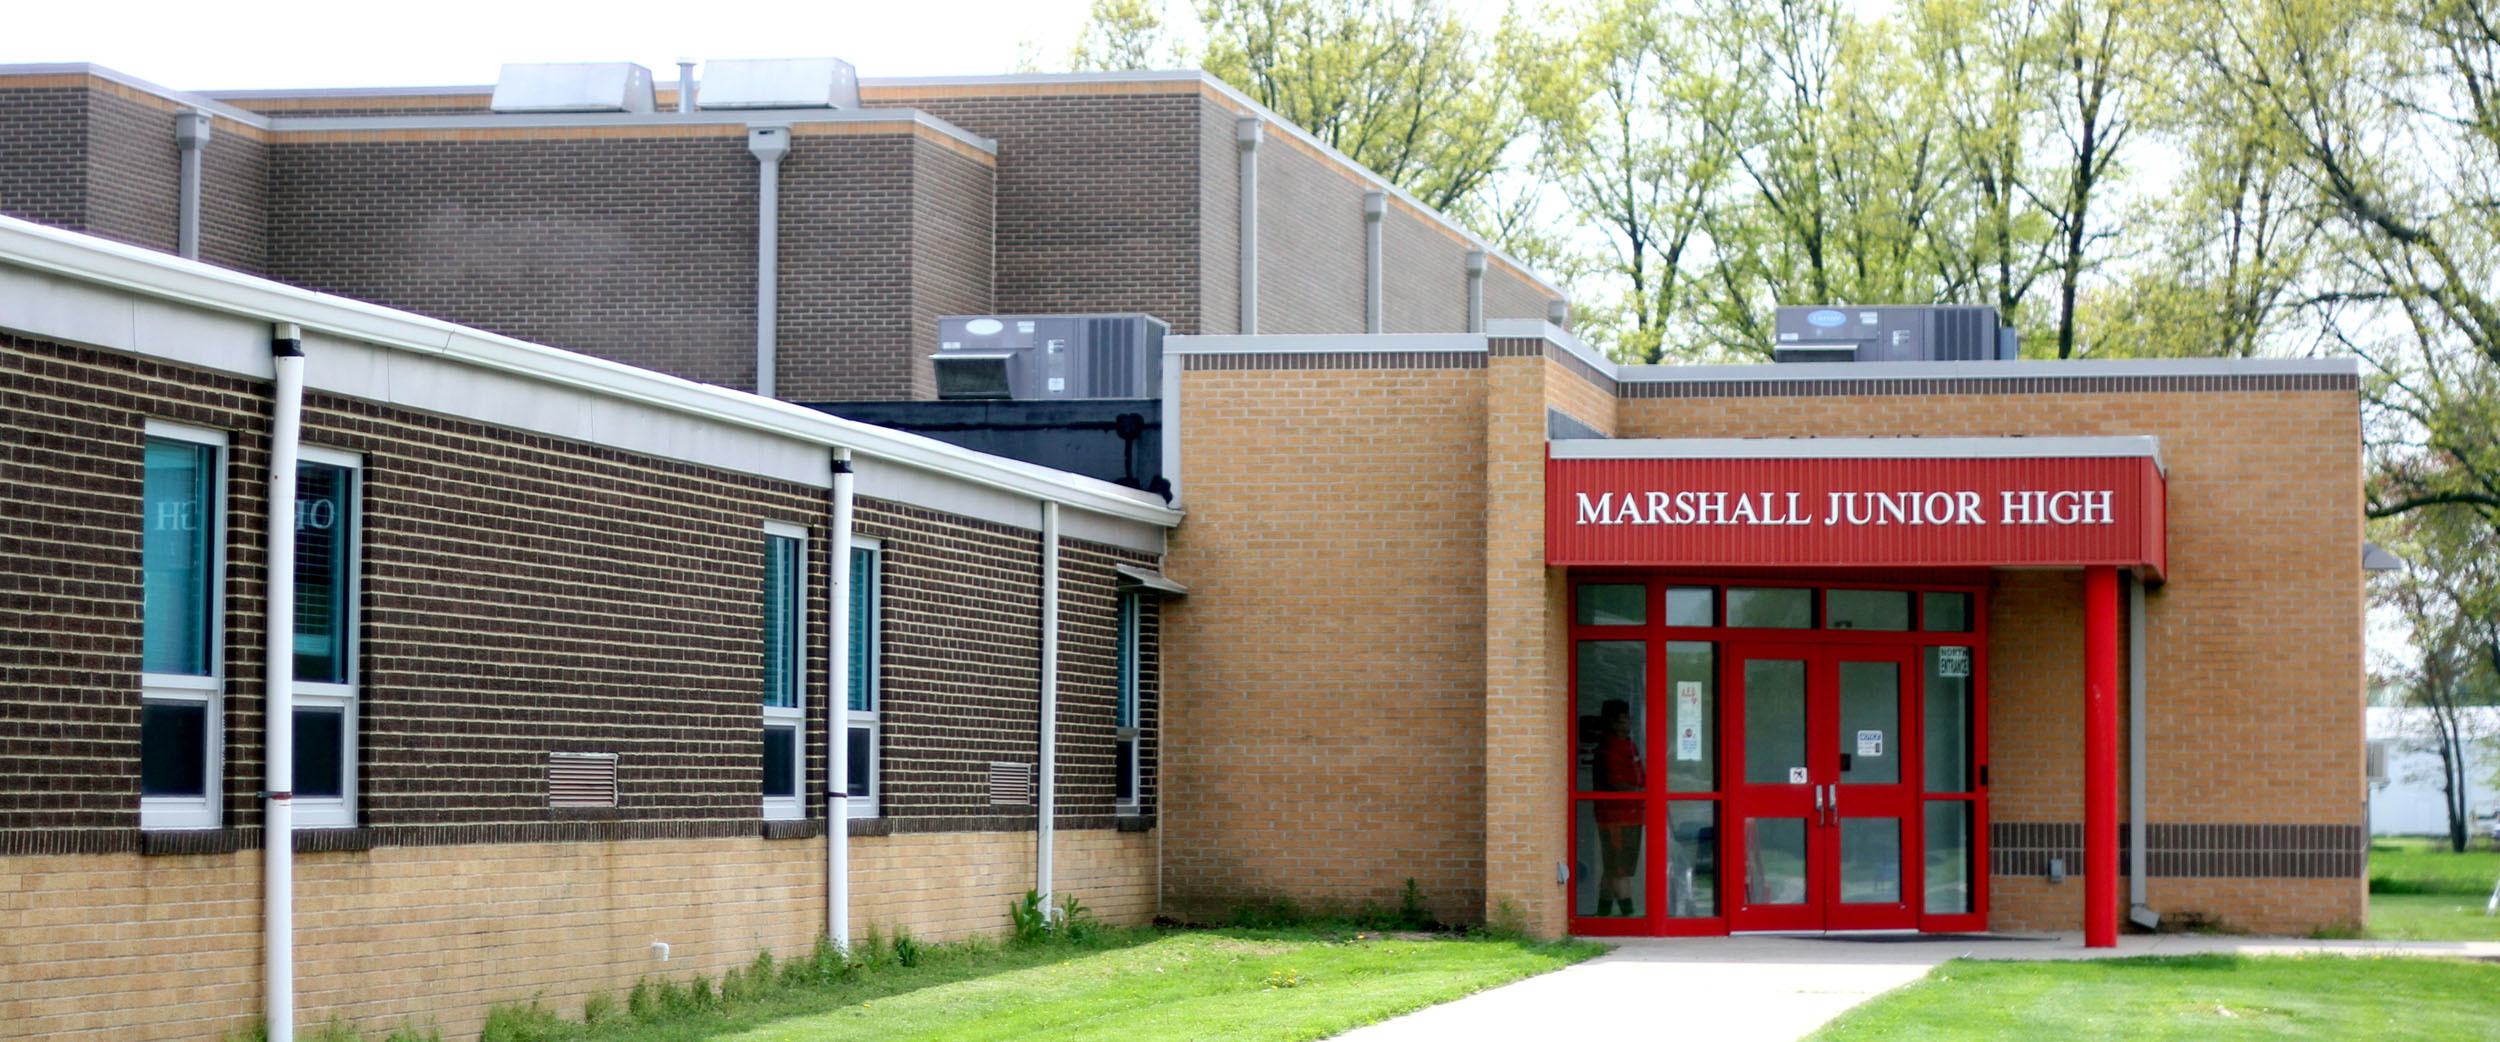 Marshall Junior High Side